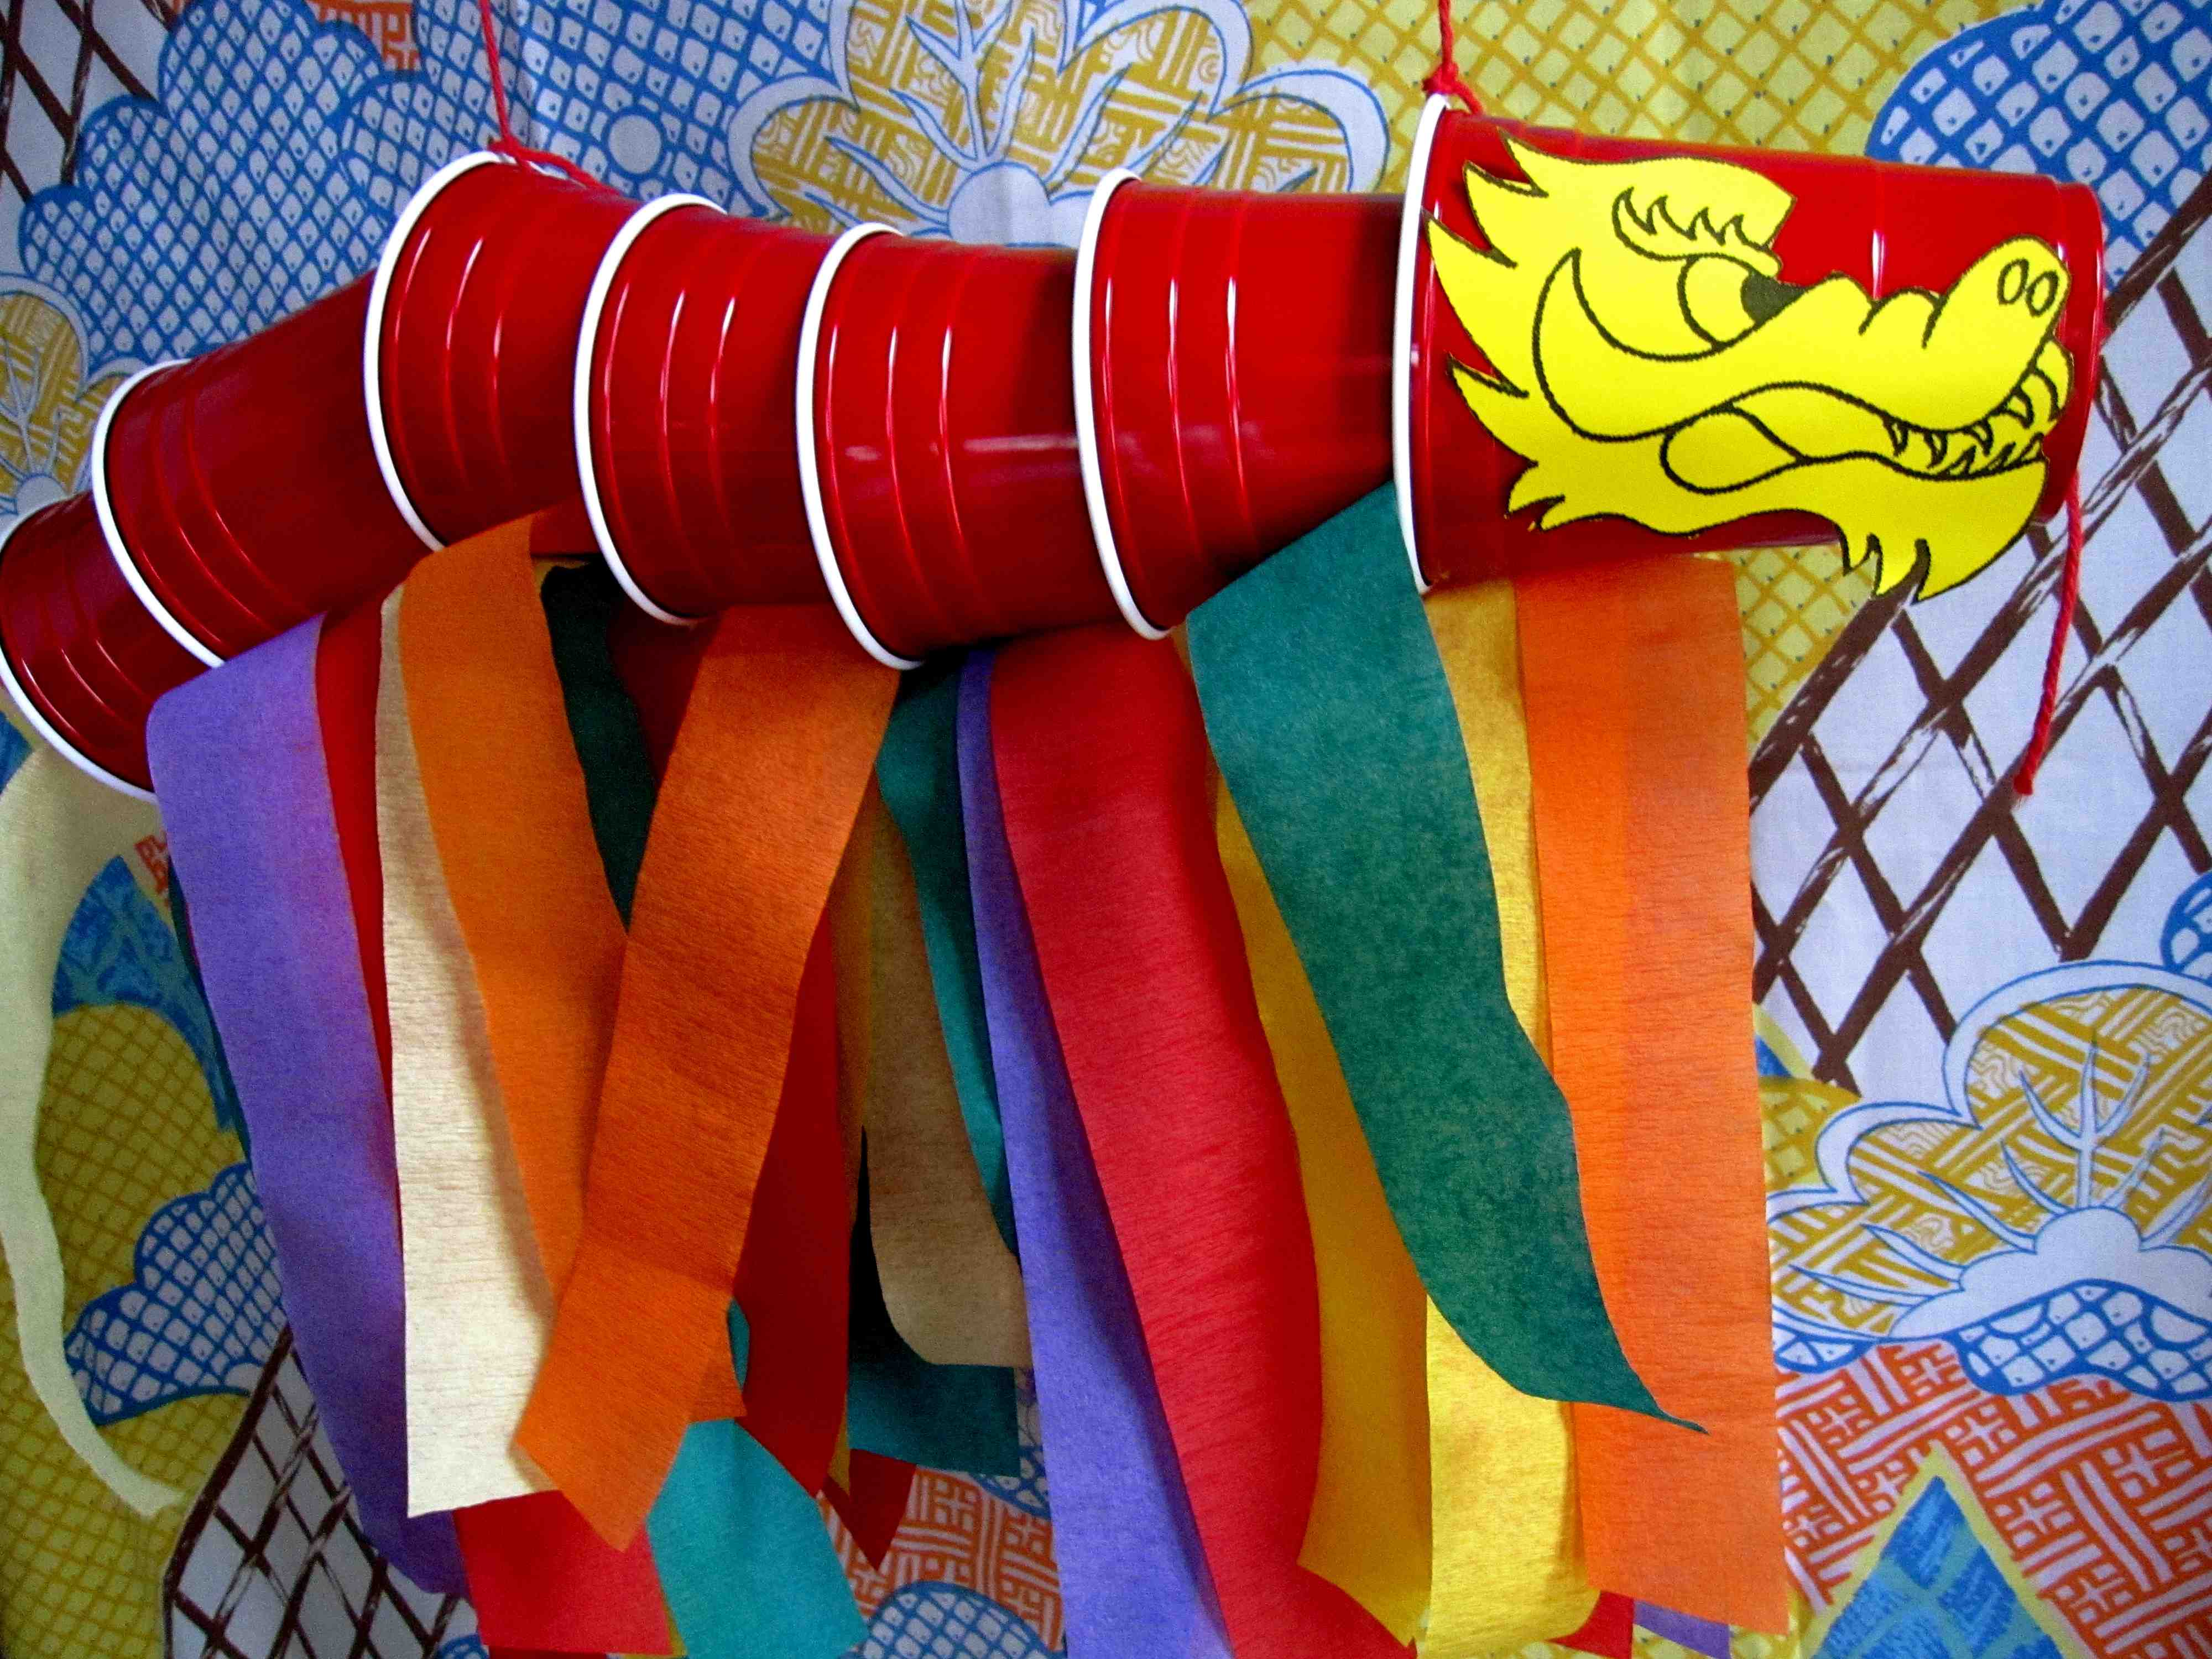 Lunar new year crafts - Chinese New Year Storytime